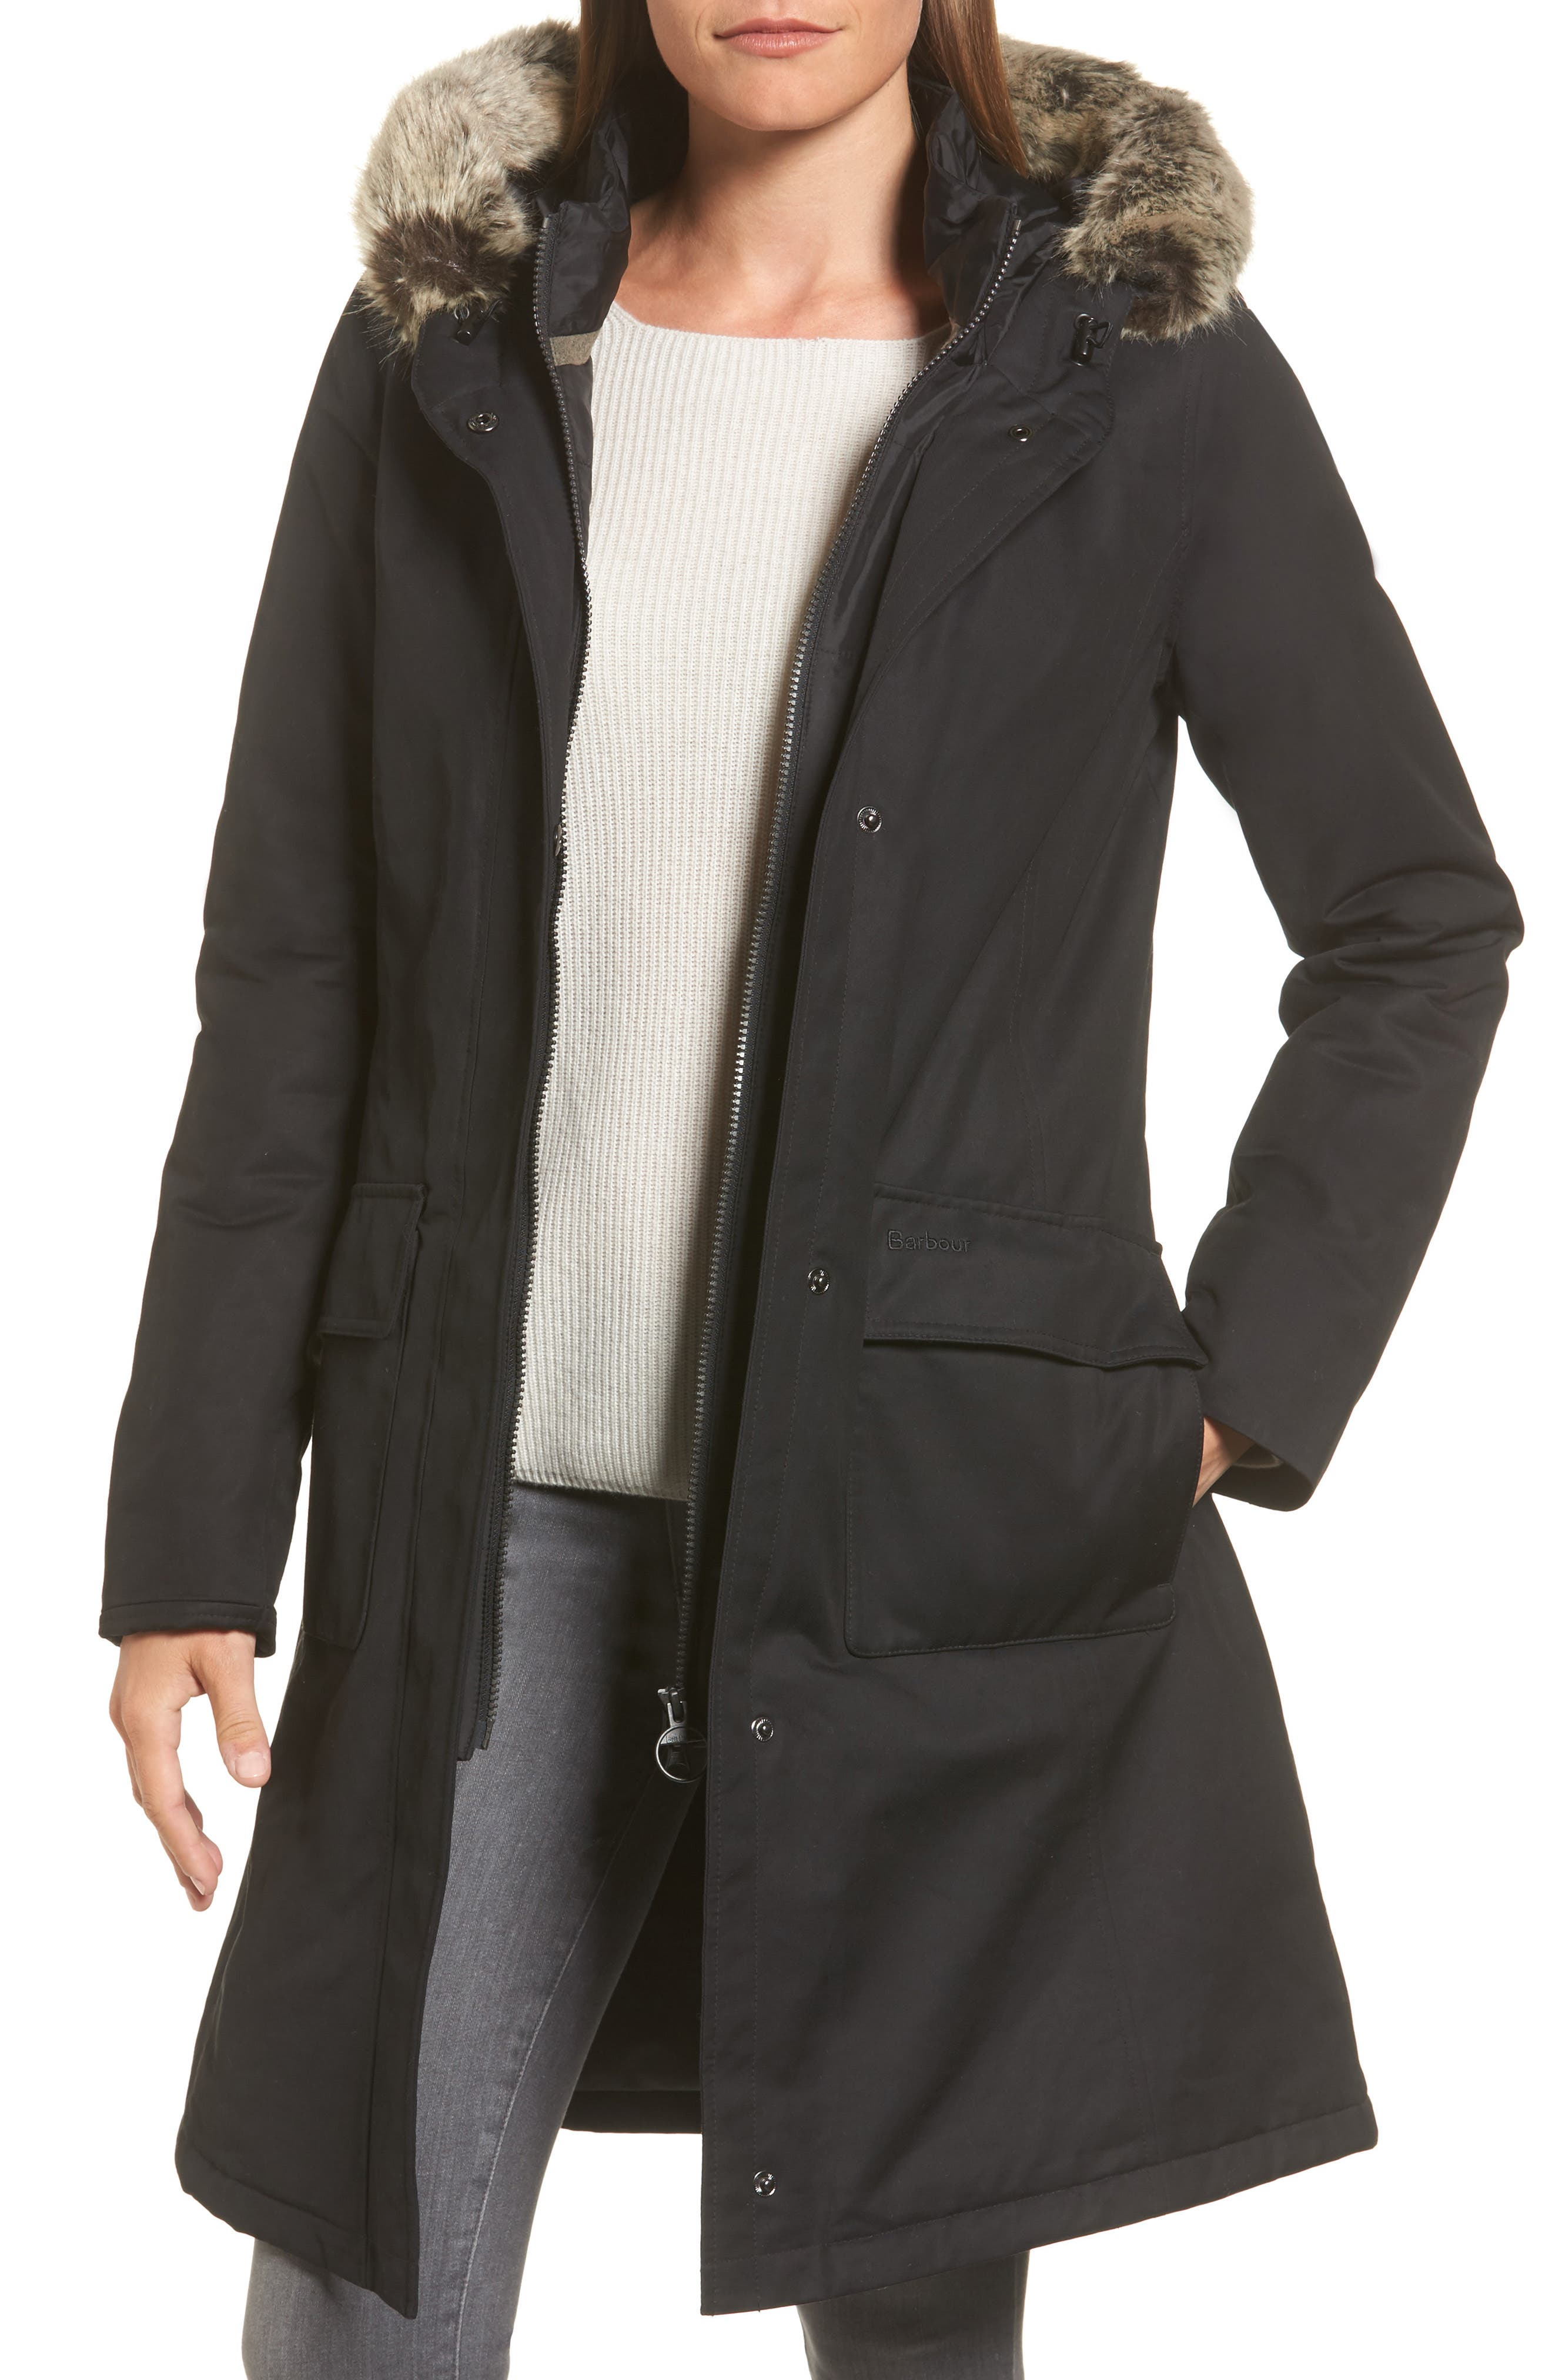 Linton Hooded Waterproof Jacket with Faux Fur Trim,                             Main thumbnail 1, color,                             Black